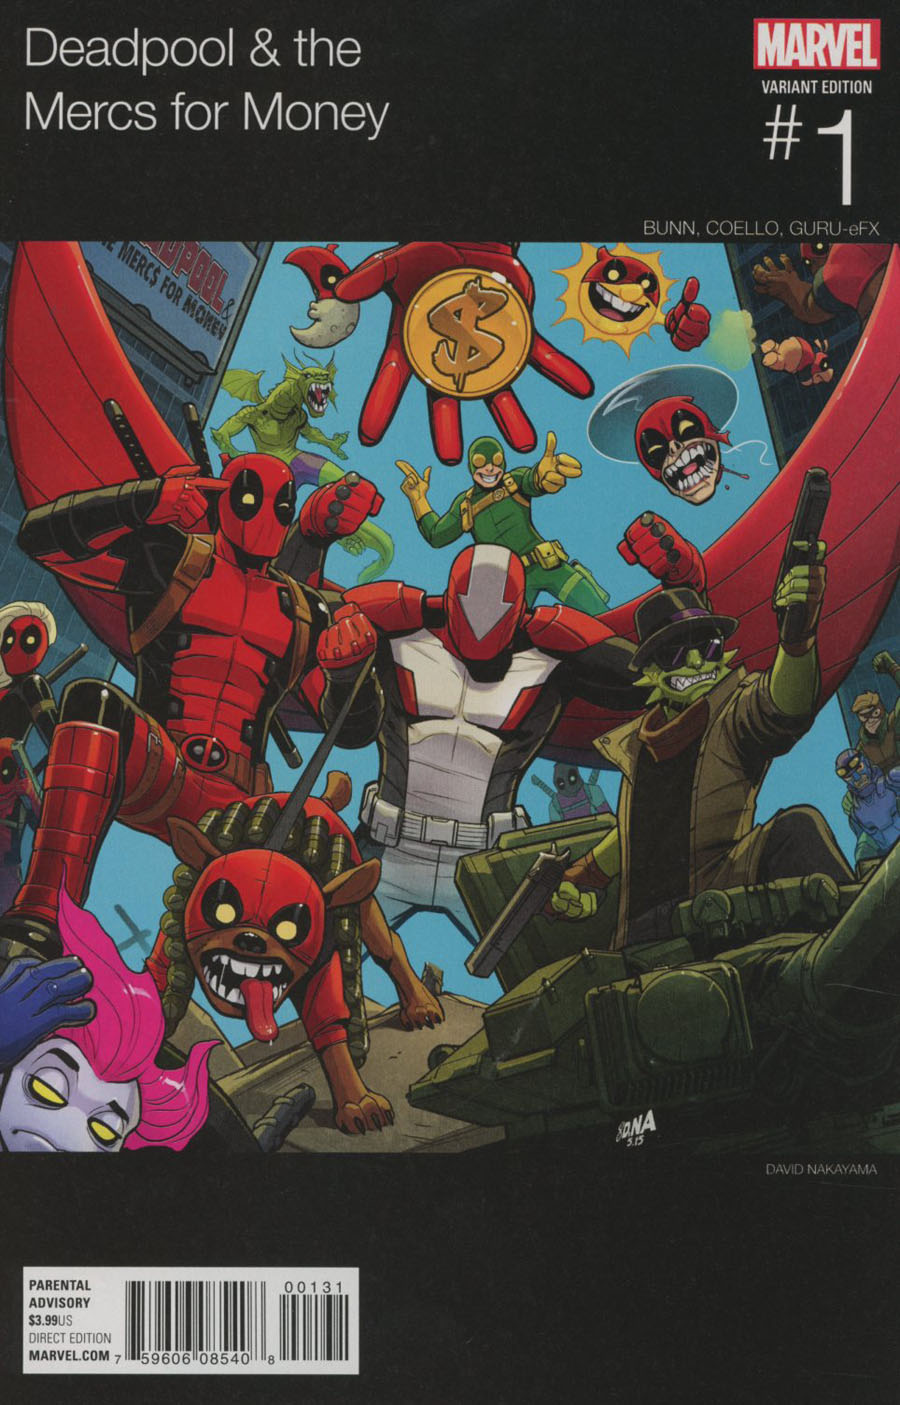 Deadpool And The Mercs For Money Vol 2 #1 Cover B Variant Marvel Hip-Hop Cover